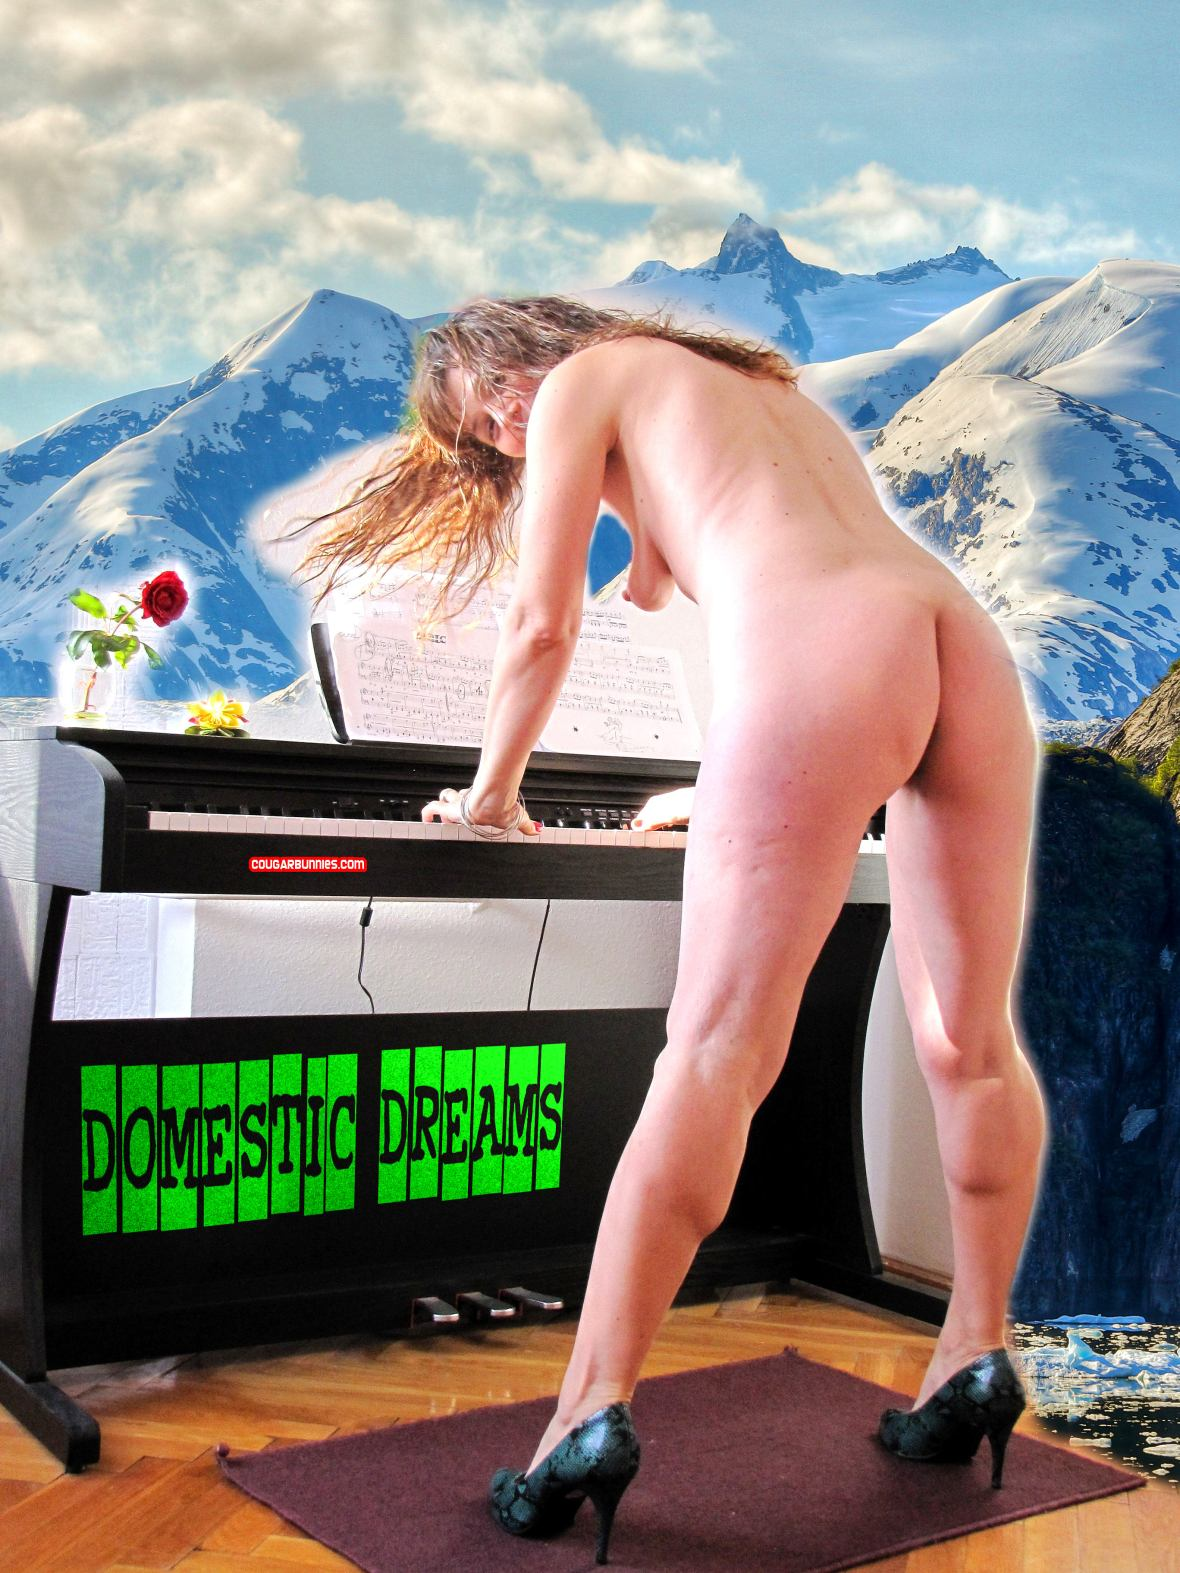 Domestic dreams with Doris Dawn - wet hair, playing the piano, or so. CougarBunnies.com